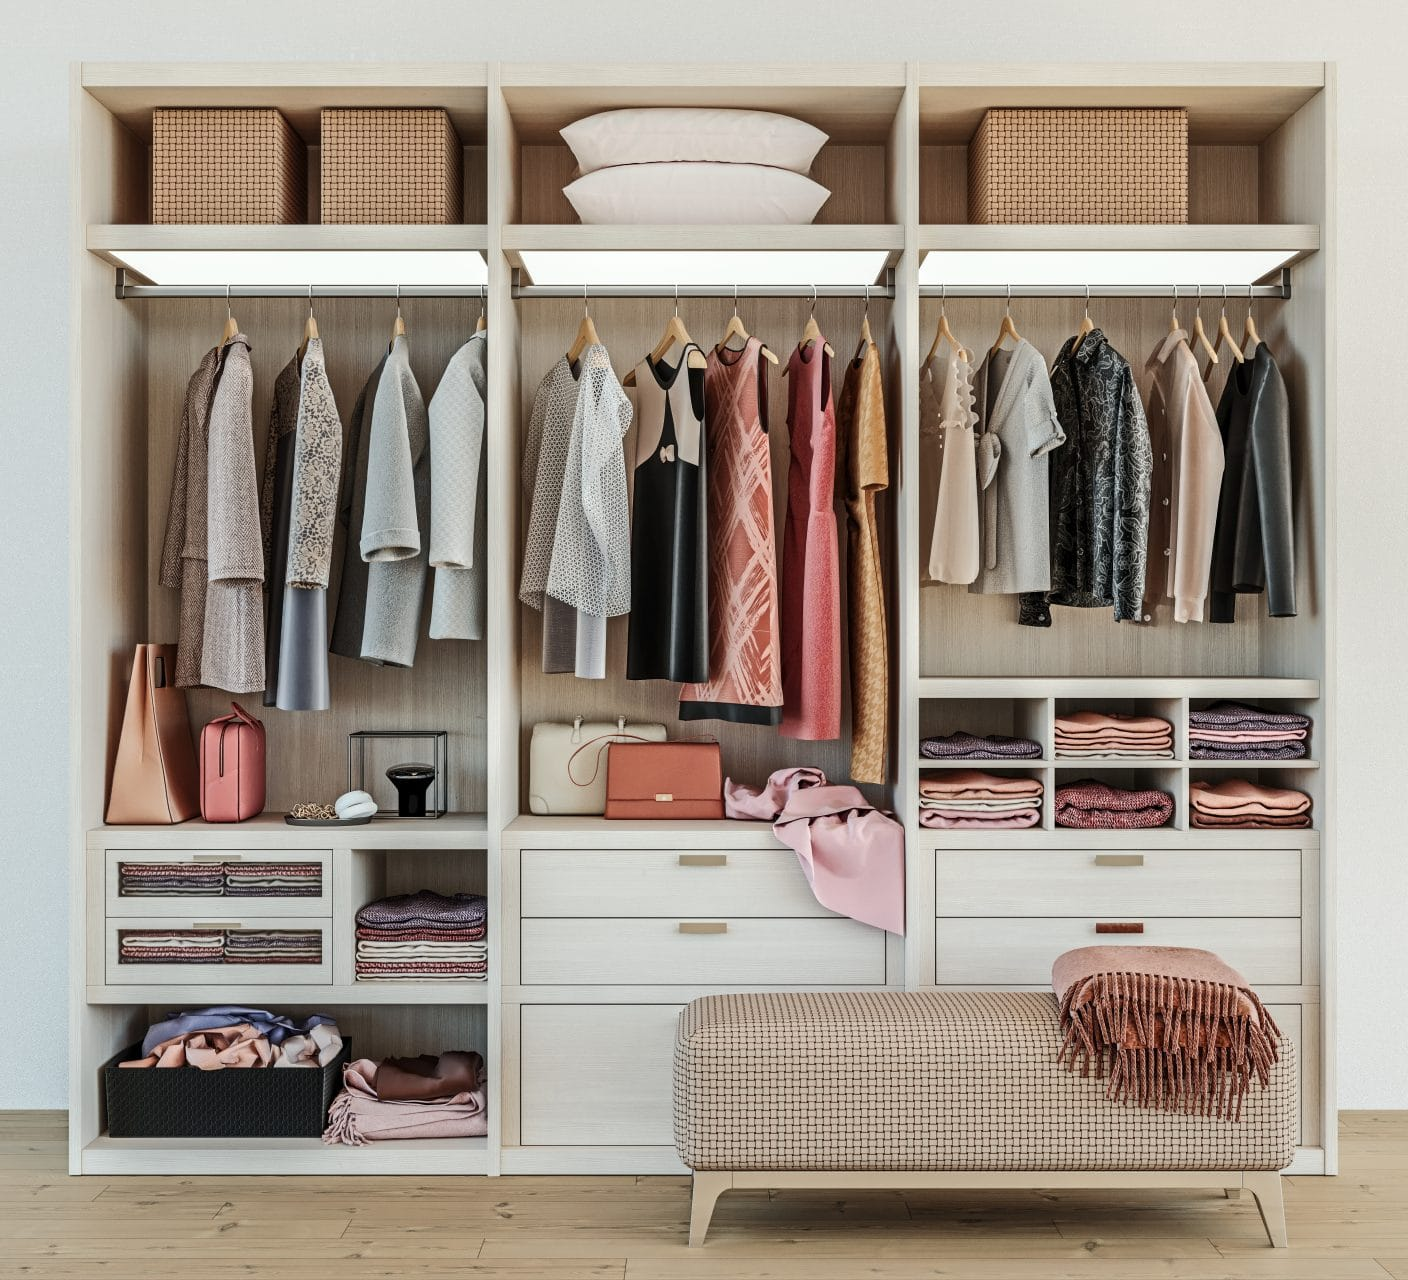 Transform and optimize small spaces with closet systems